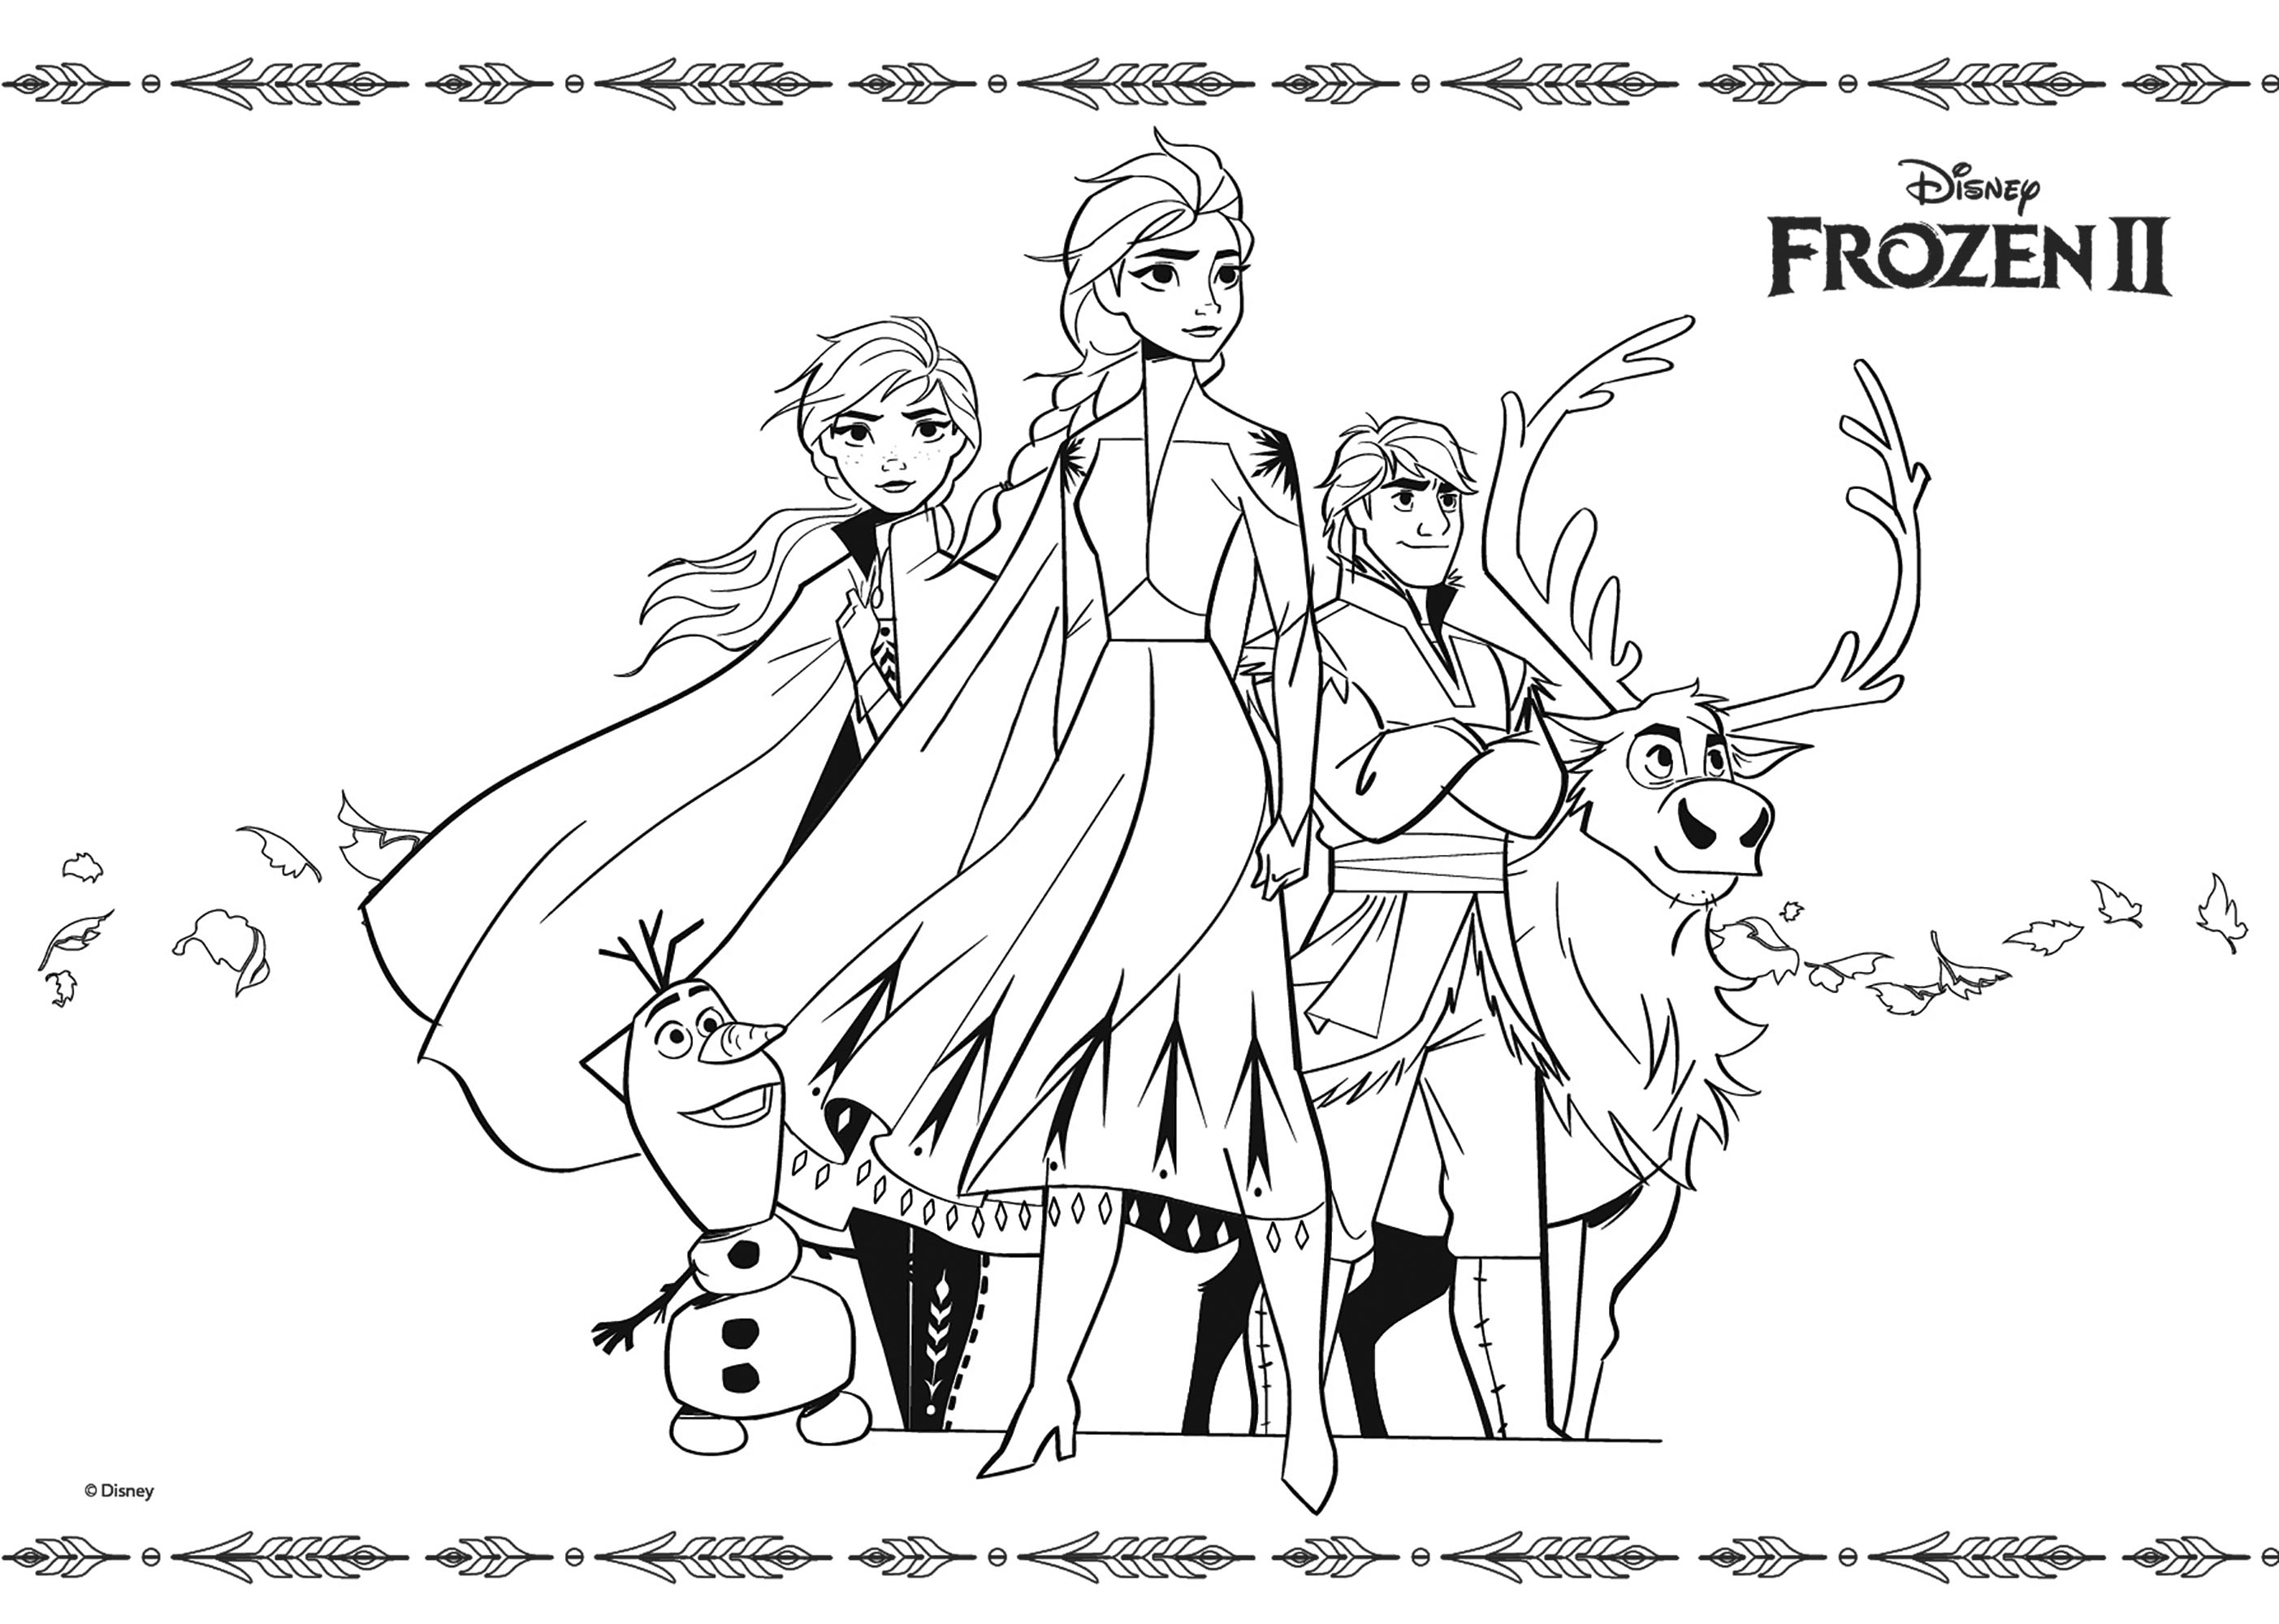 Coloriage Officiel Disney Frozen 2 Coloriage La Reine Des Neiges 2 Coloriages Pour Enfants